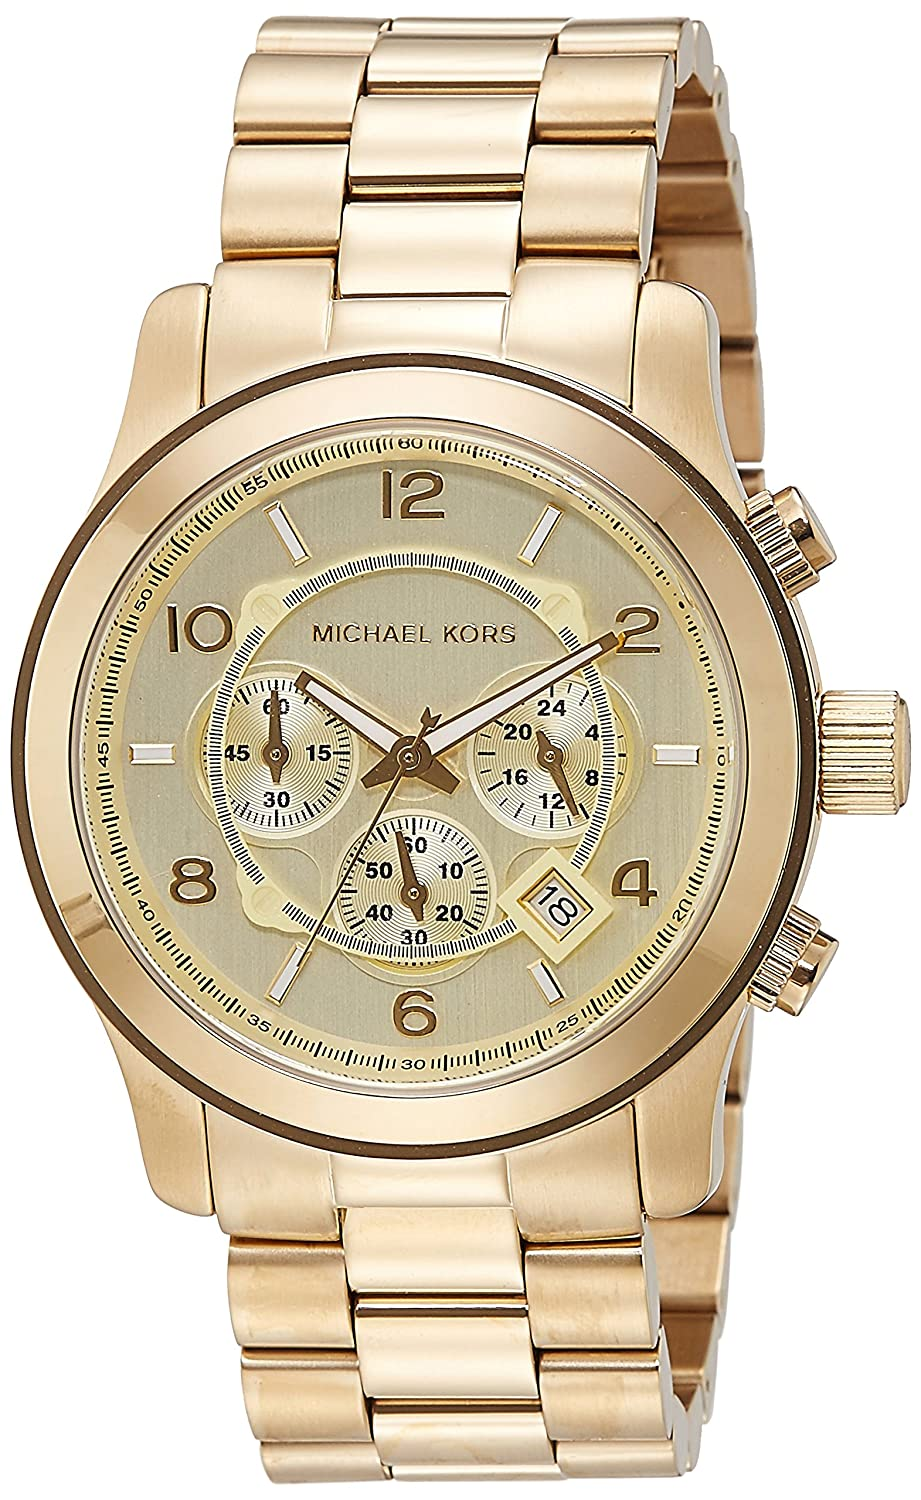 880c1f35c8cea3 Amazon.com: Michael Kors MK8077 Gold-Tone Men's Watch: Michael Kors: Watches